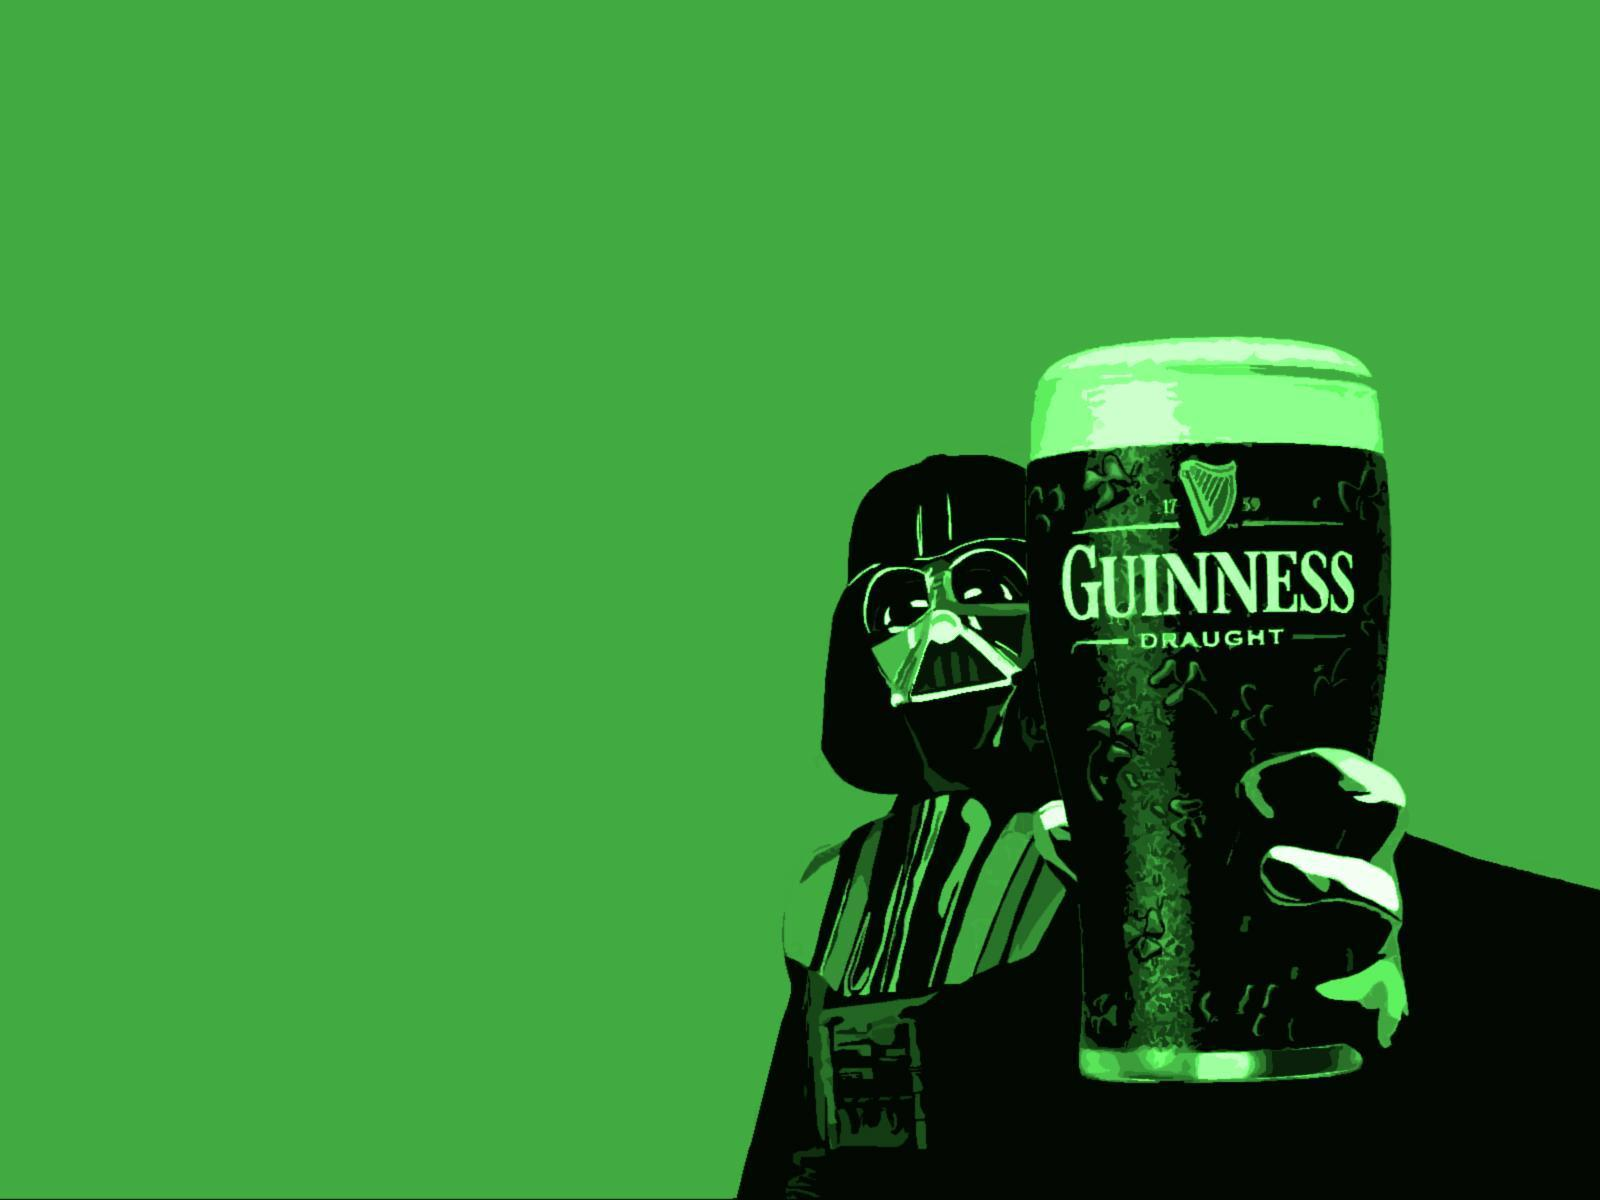 St. Patrick's Day with Guinness wallpapers and images - wallpapers ...